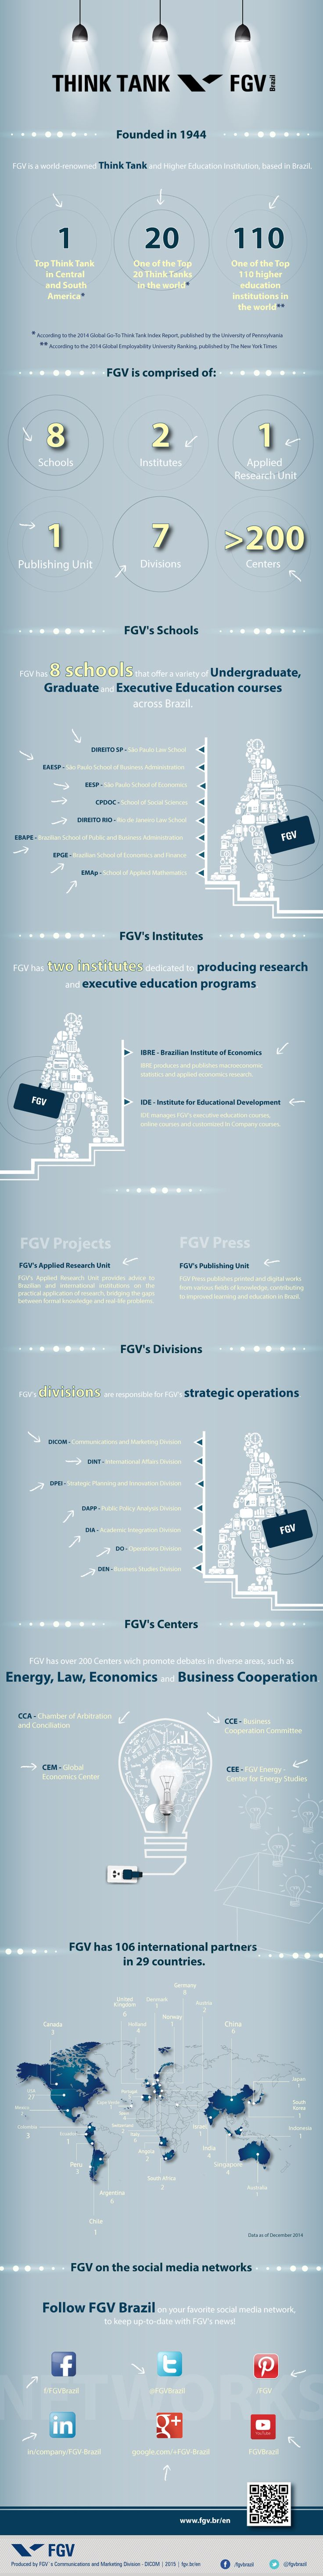 Think Tank FGV Brazil -   This infographic, updated in 2015, summarizes the structure of FGV; top think tank in Latin America and one of the top higher education institutions in the world. www.fgv.br/en